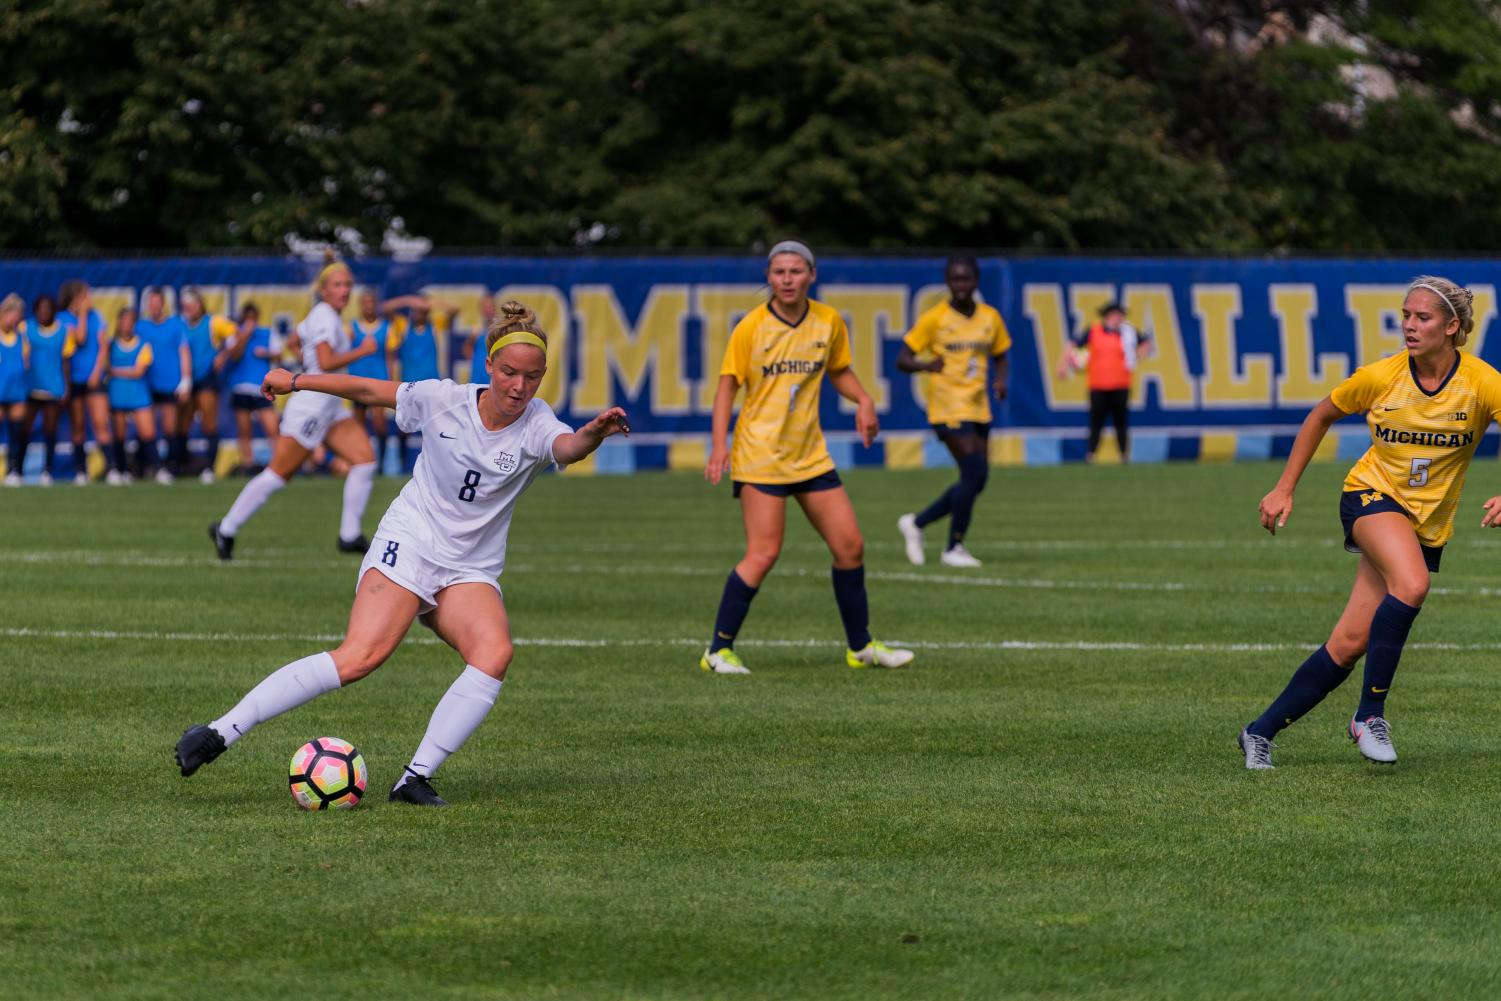 Junior forward Kylie Sprecher (left) played in 49 minutes of Marquette's win over Michigan Sept. 1 at Valley Fields.